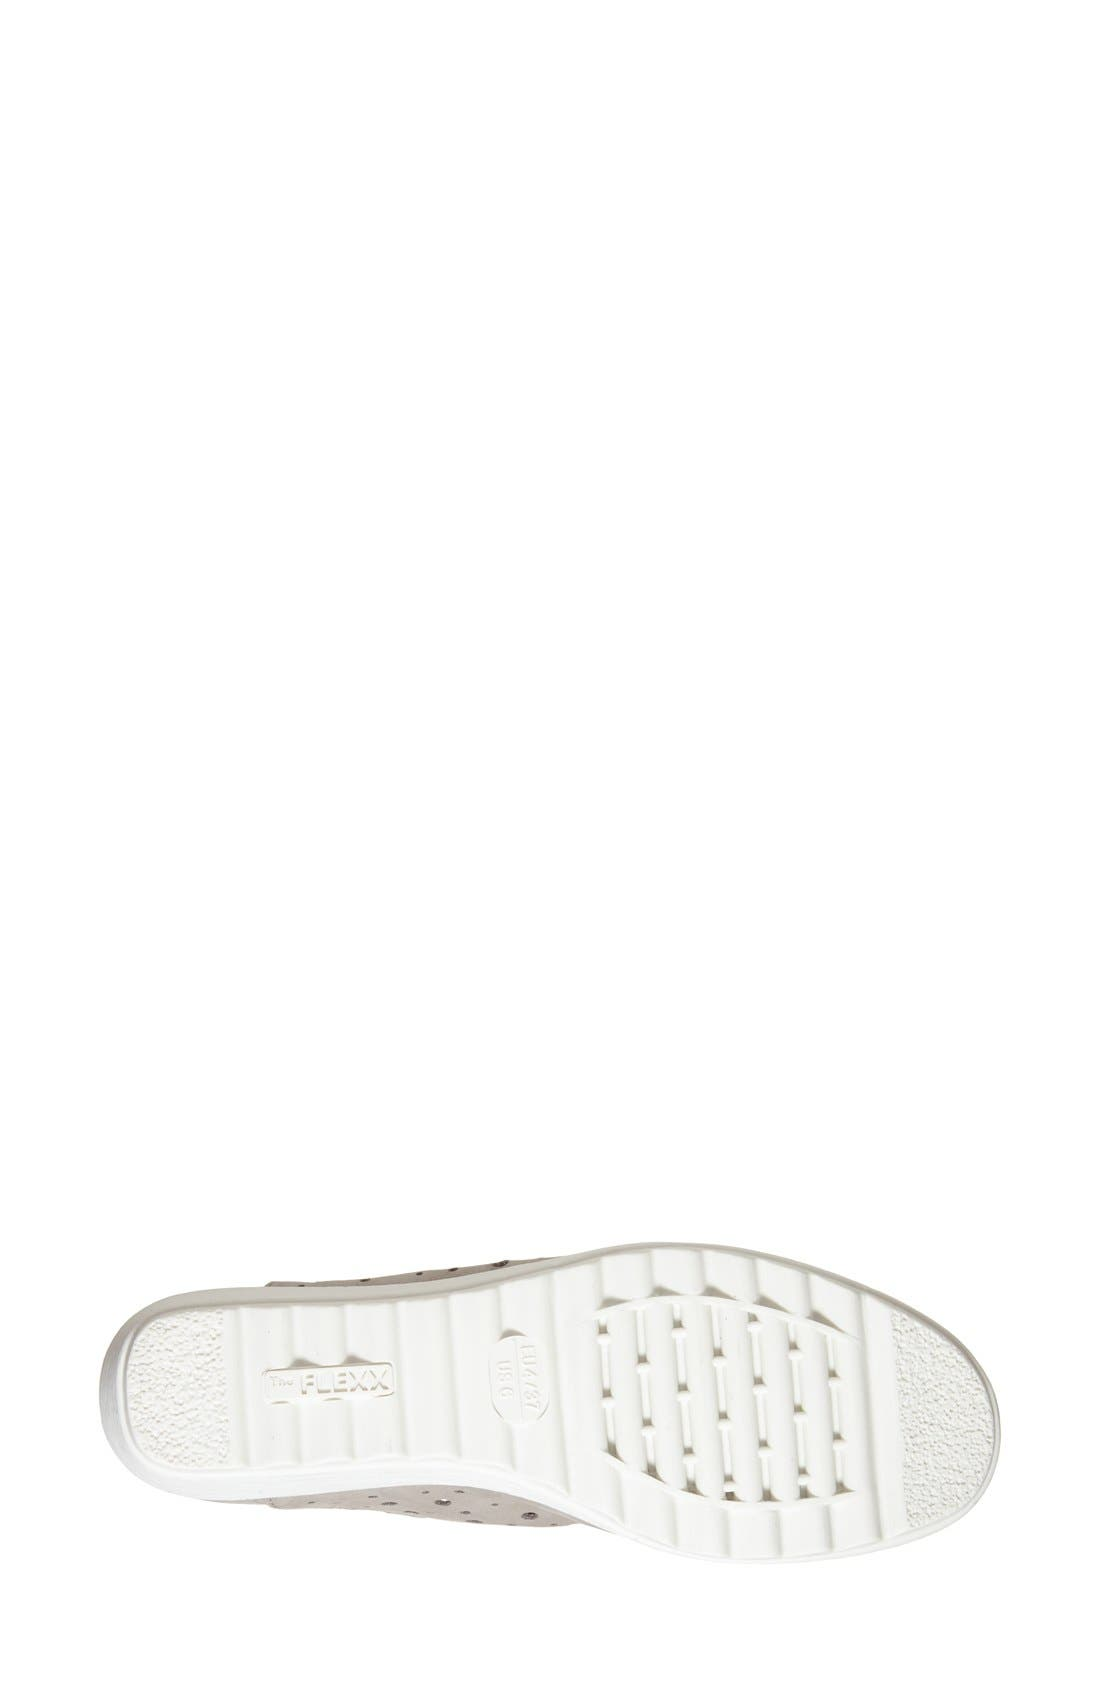 Run Crazy Too Perforated Wedge Sneaker,                             Alternate thumbnail 34, color,